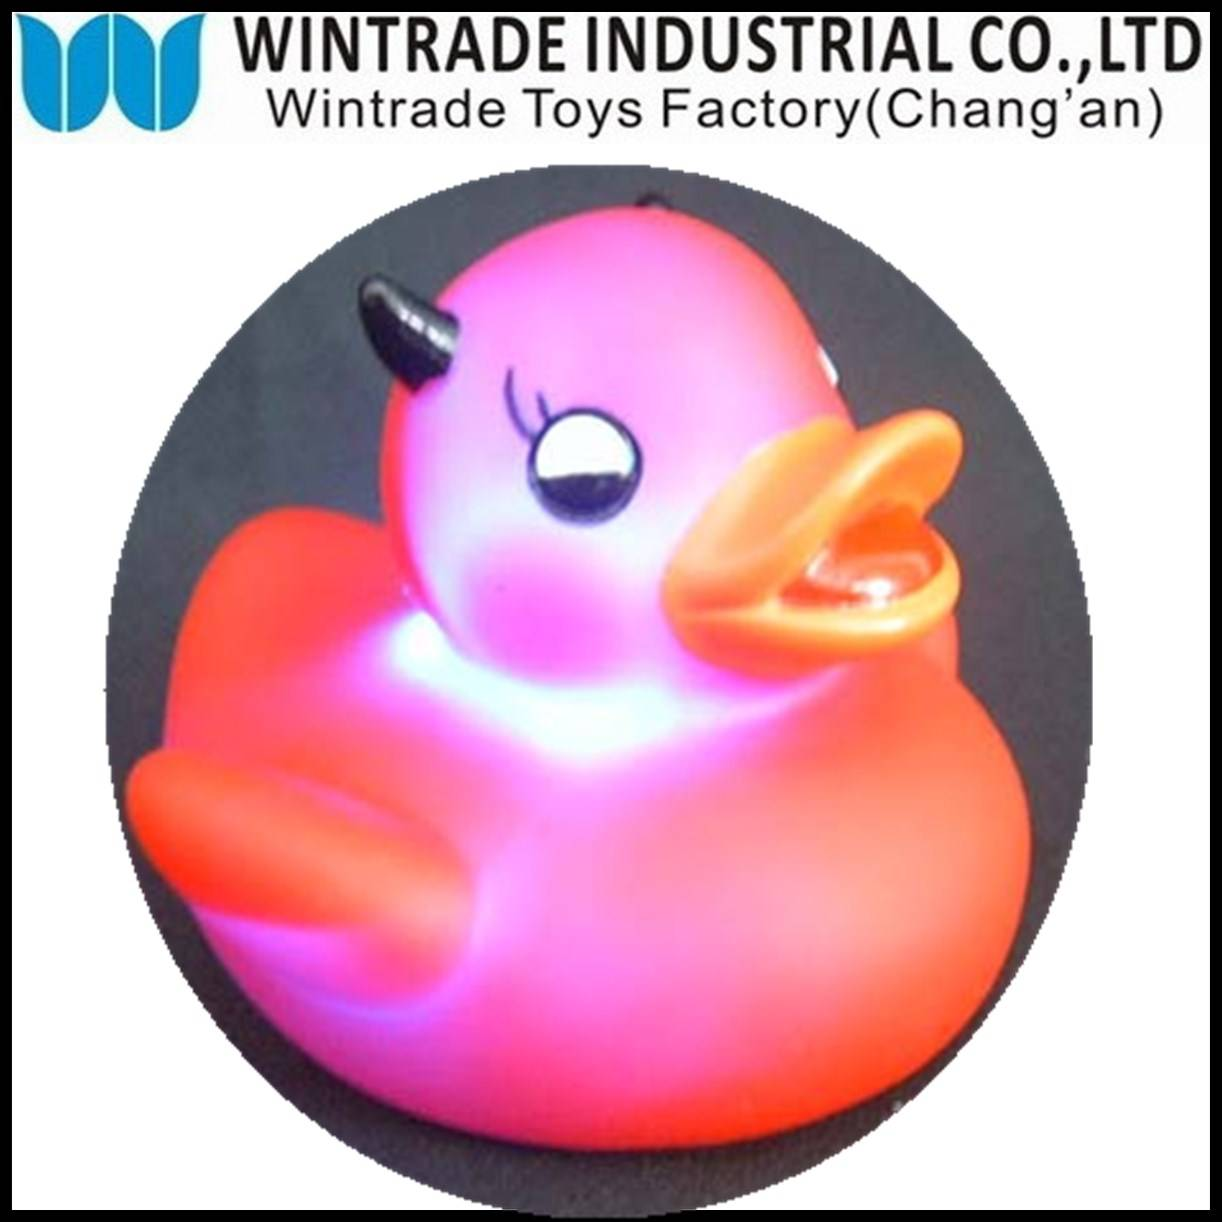 LED rubber bath duck baby toy